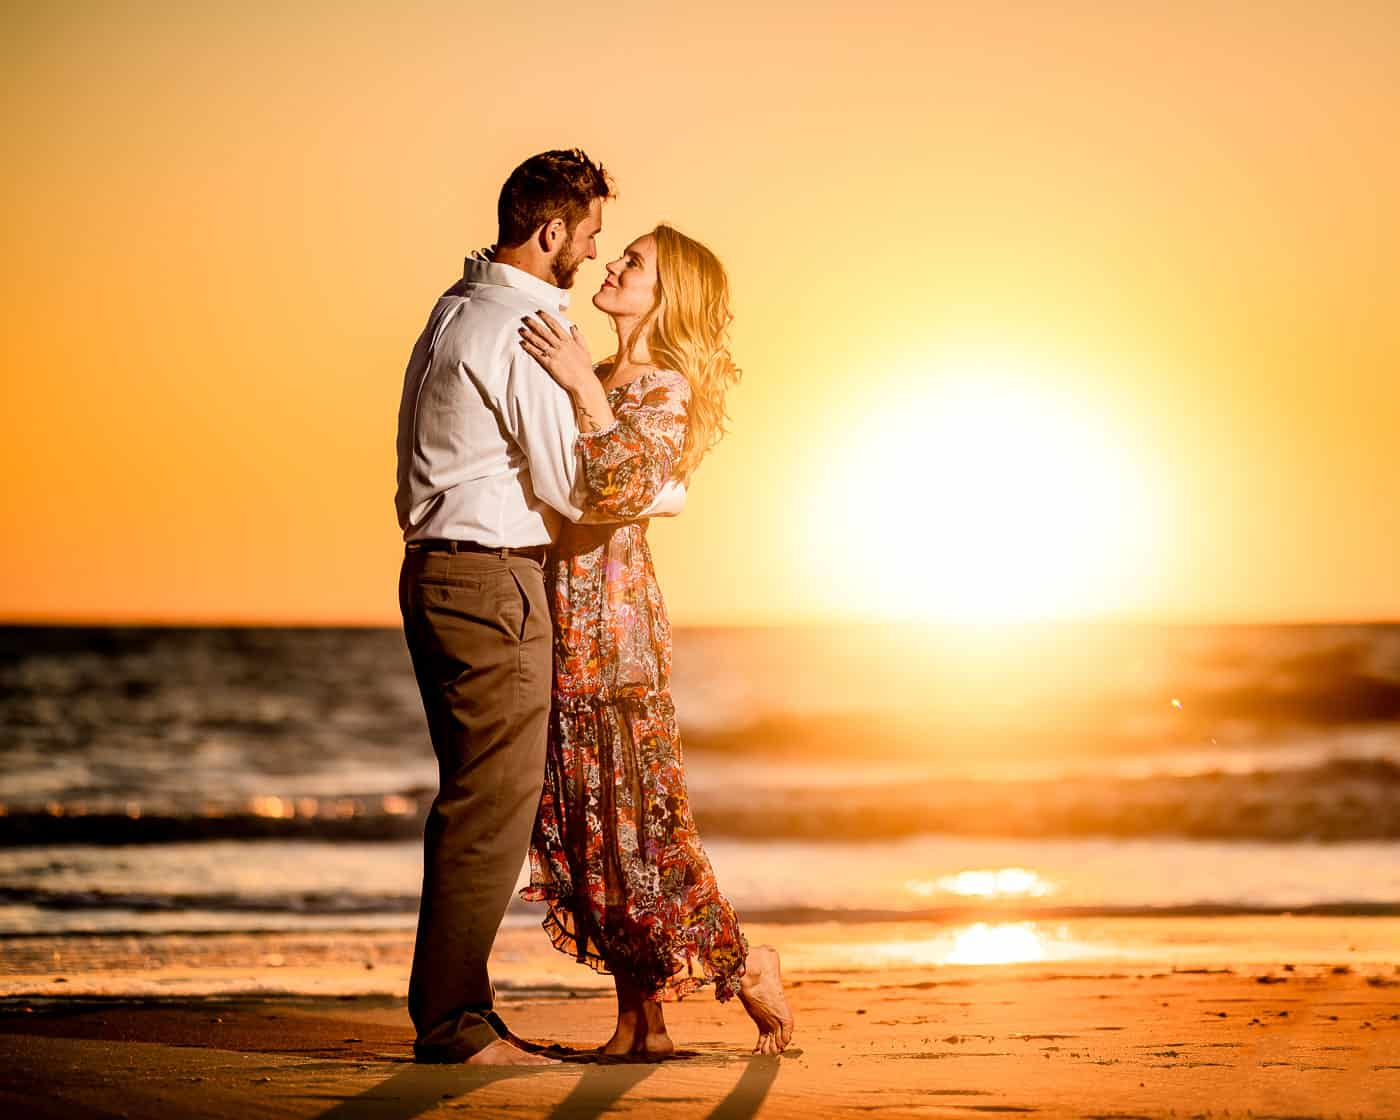 Sunset Engagement Session at Cape May Point